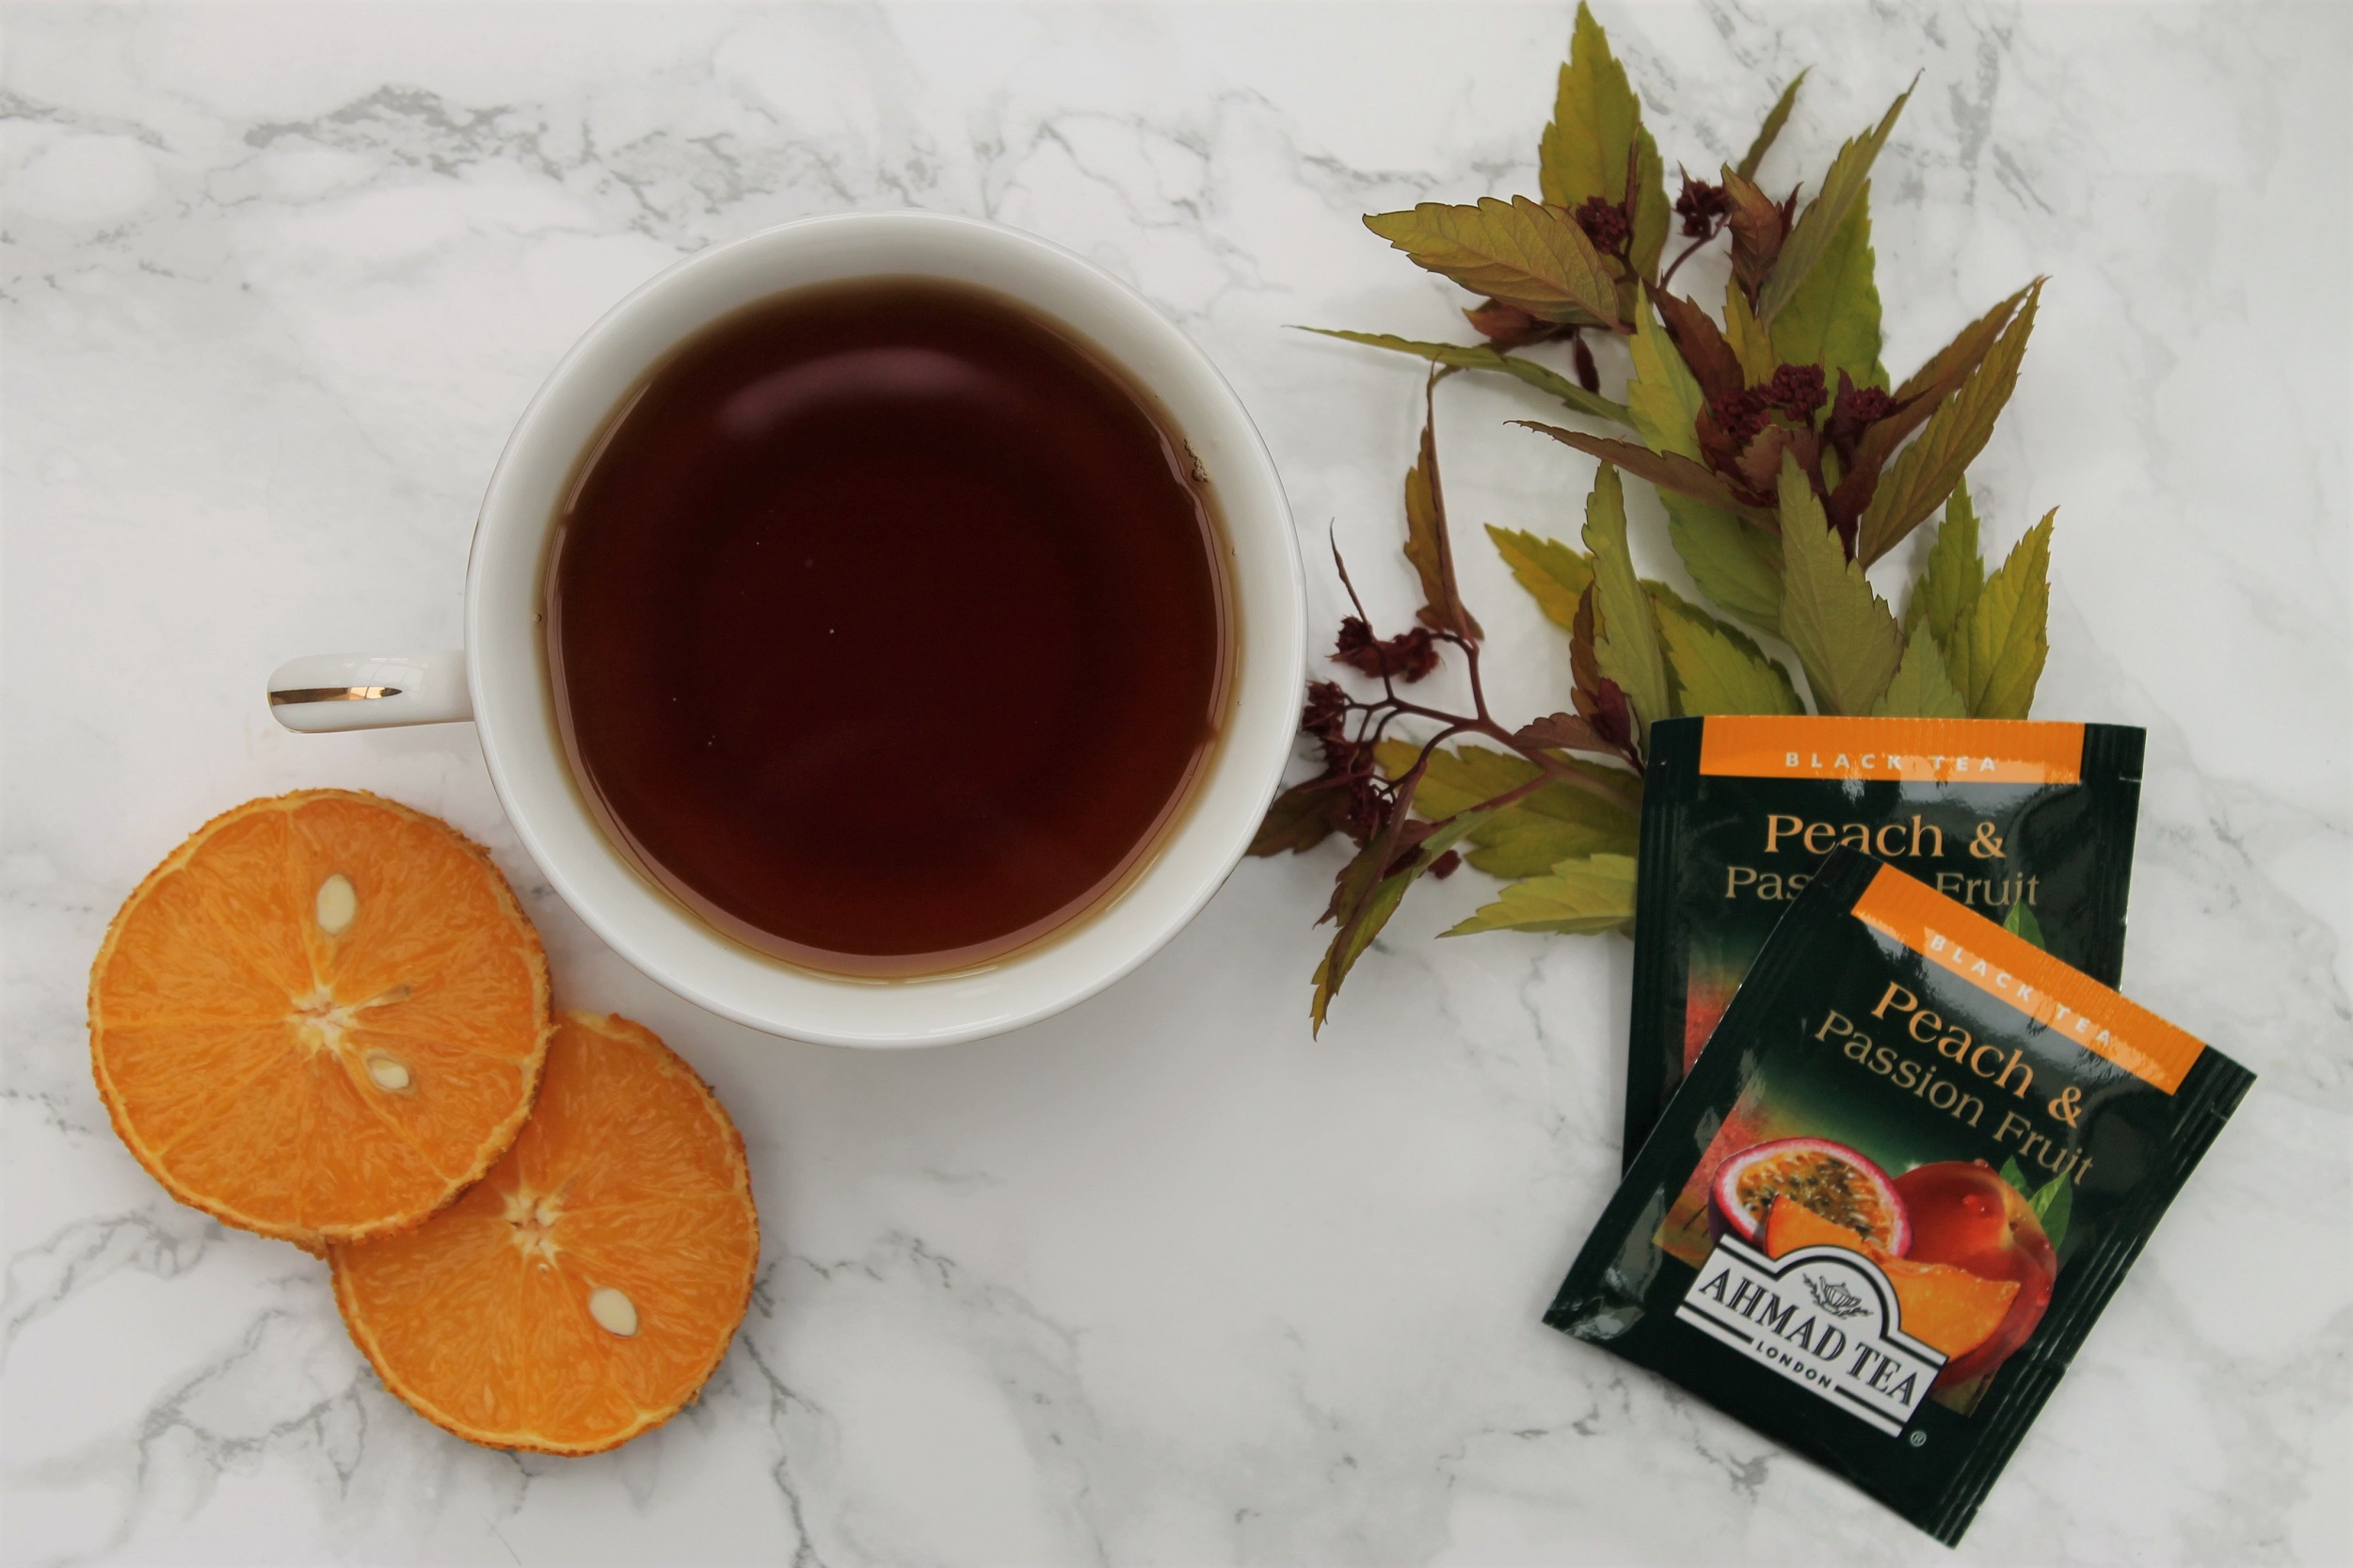 Ahmad Tea Peach & Passionfruit Tea Review